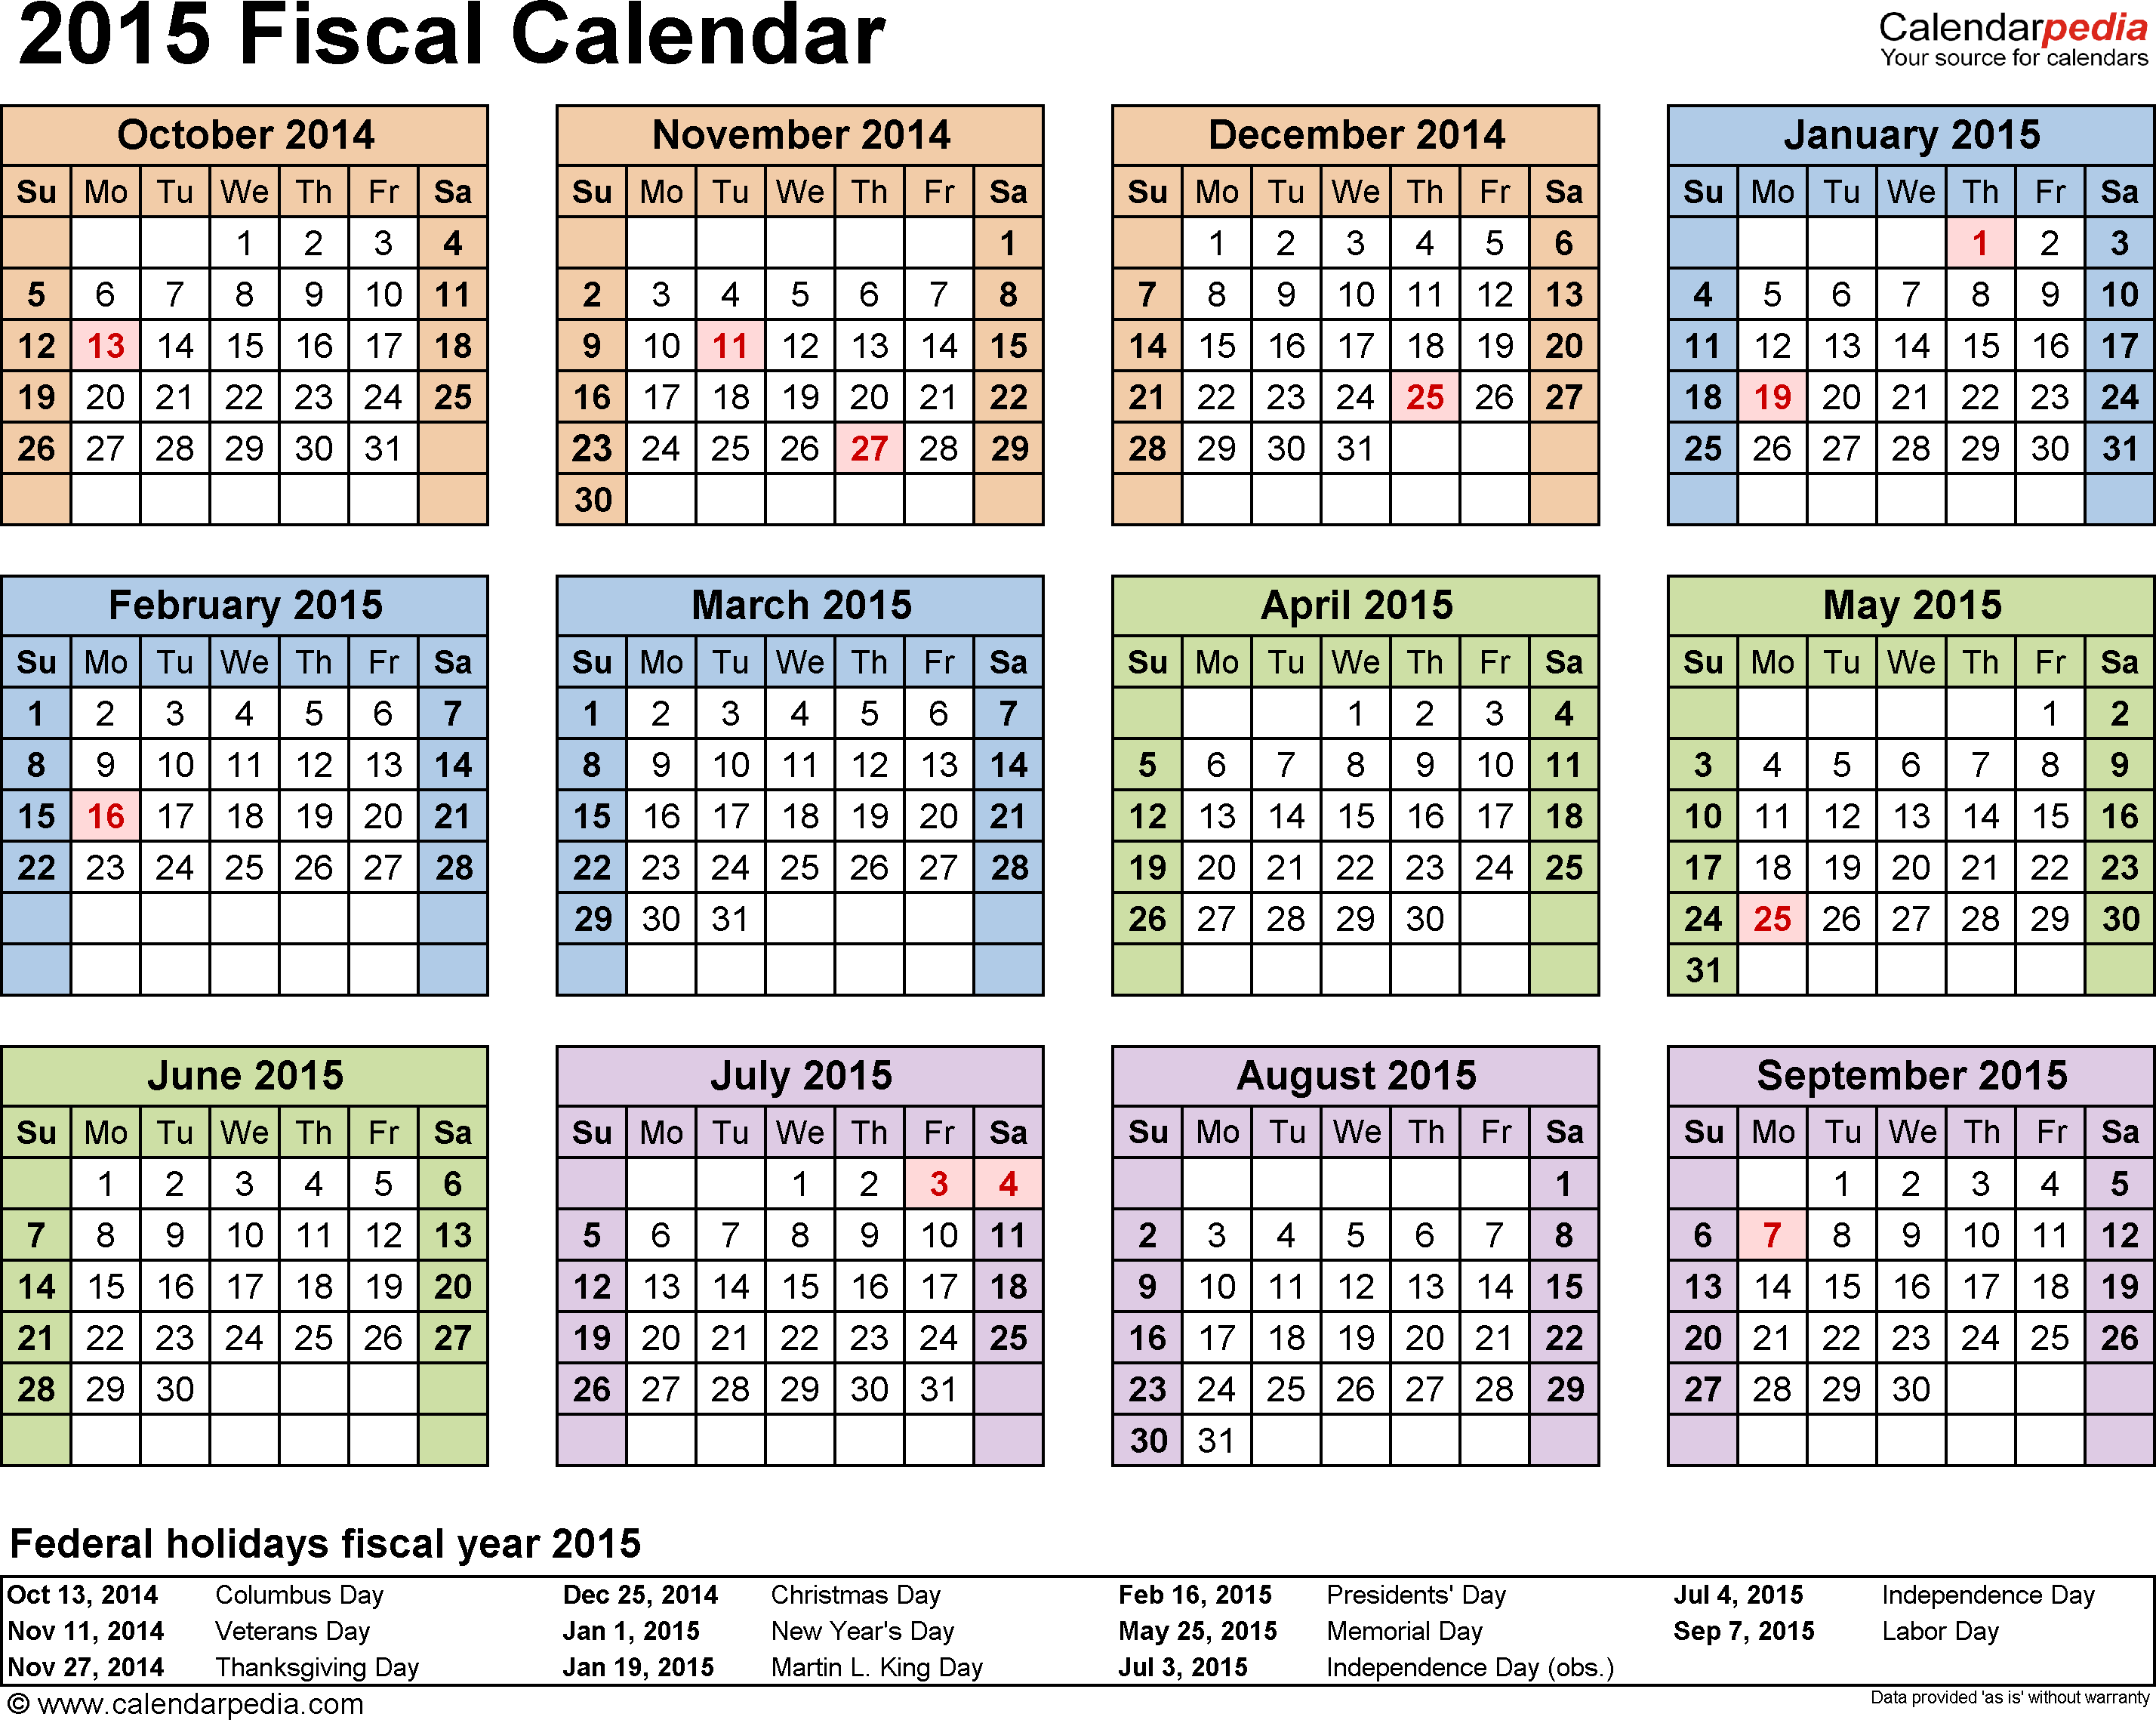 2015 yearly calendar template in landscape format - fiscal calendars 2015 as free printable pdf templates